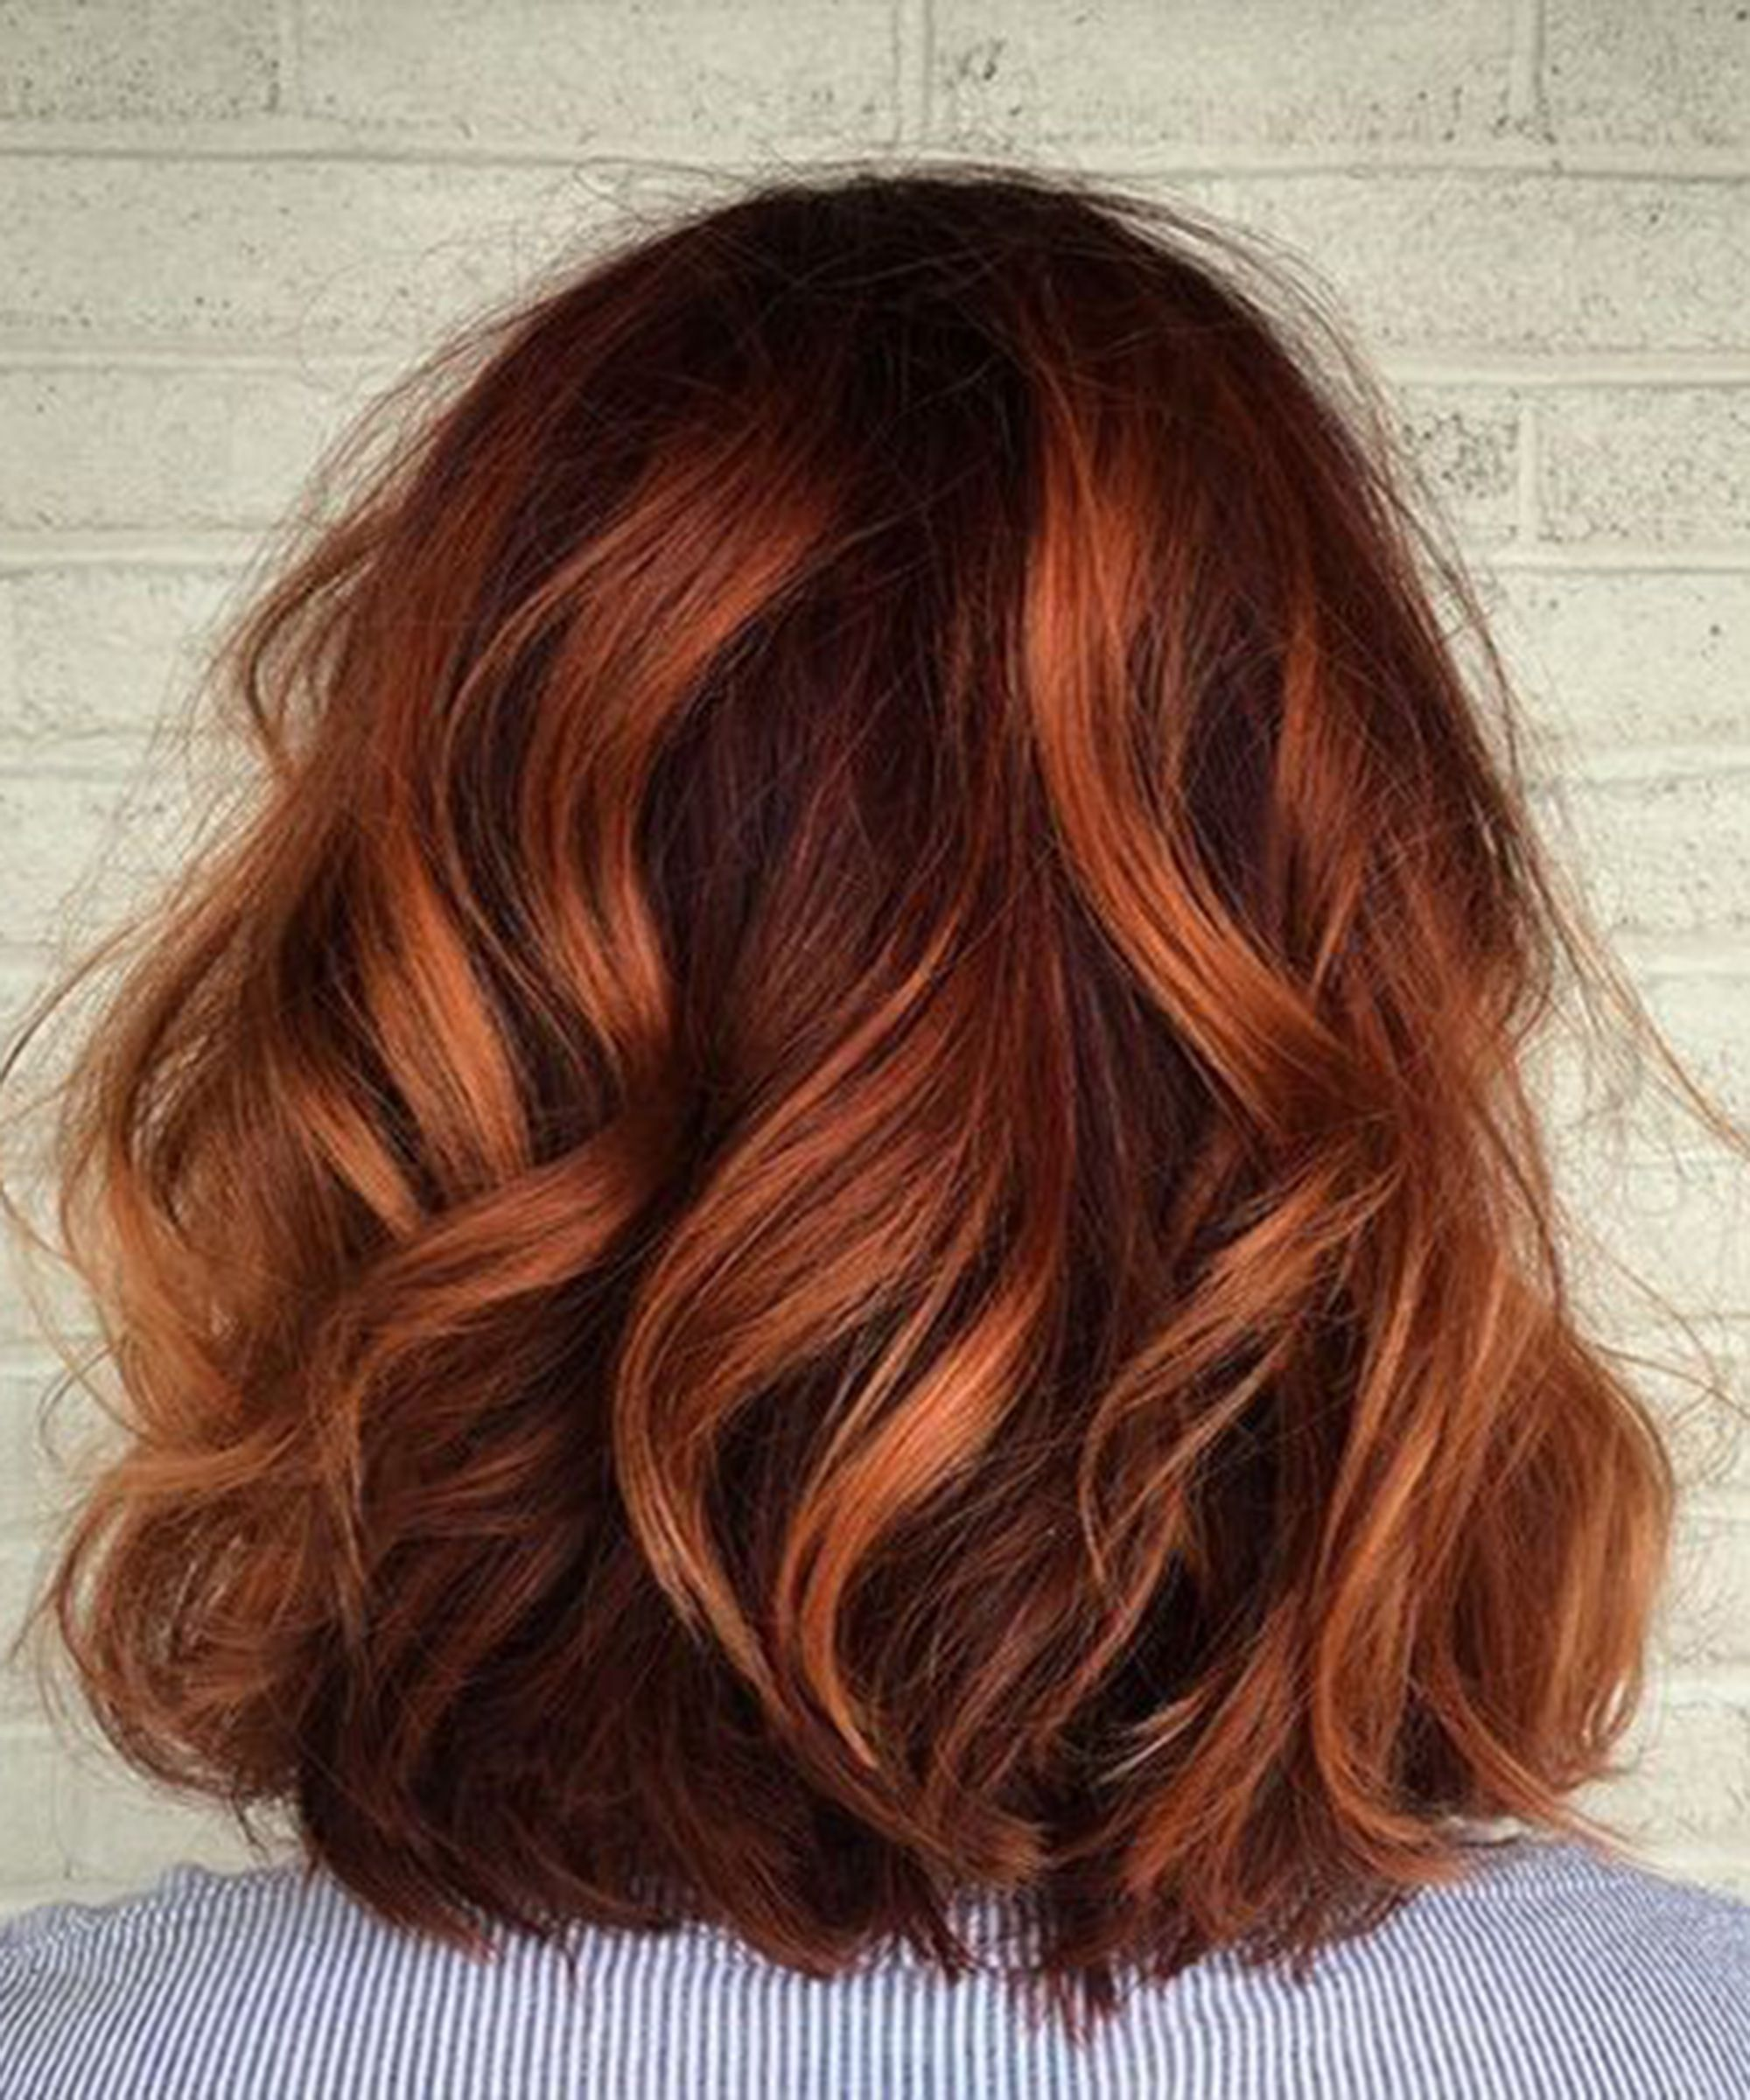 This London Hair Color Trend Makes Growing Out Highlights So Easy In